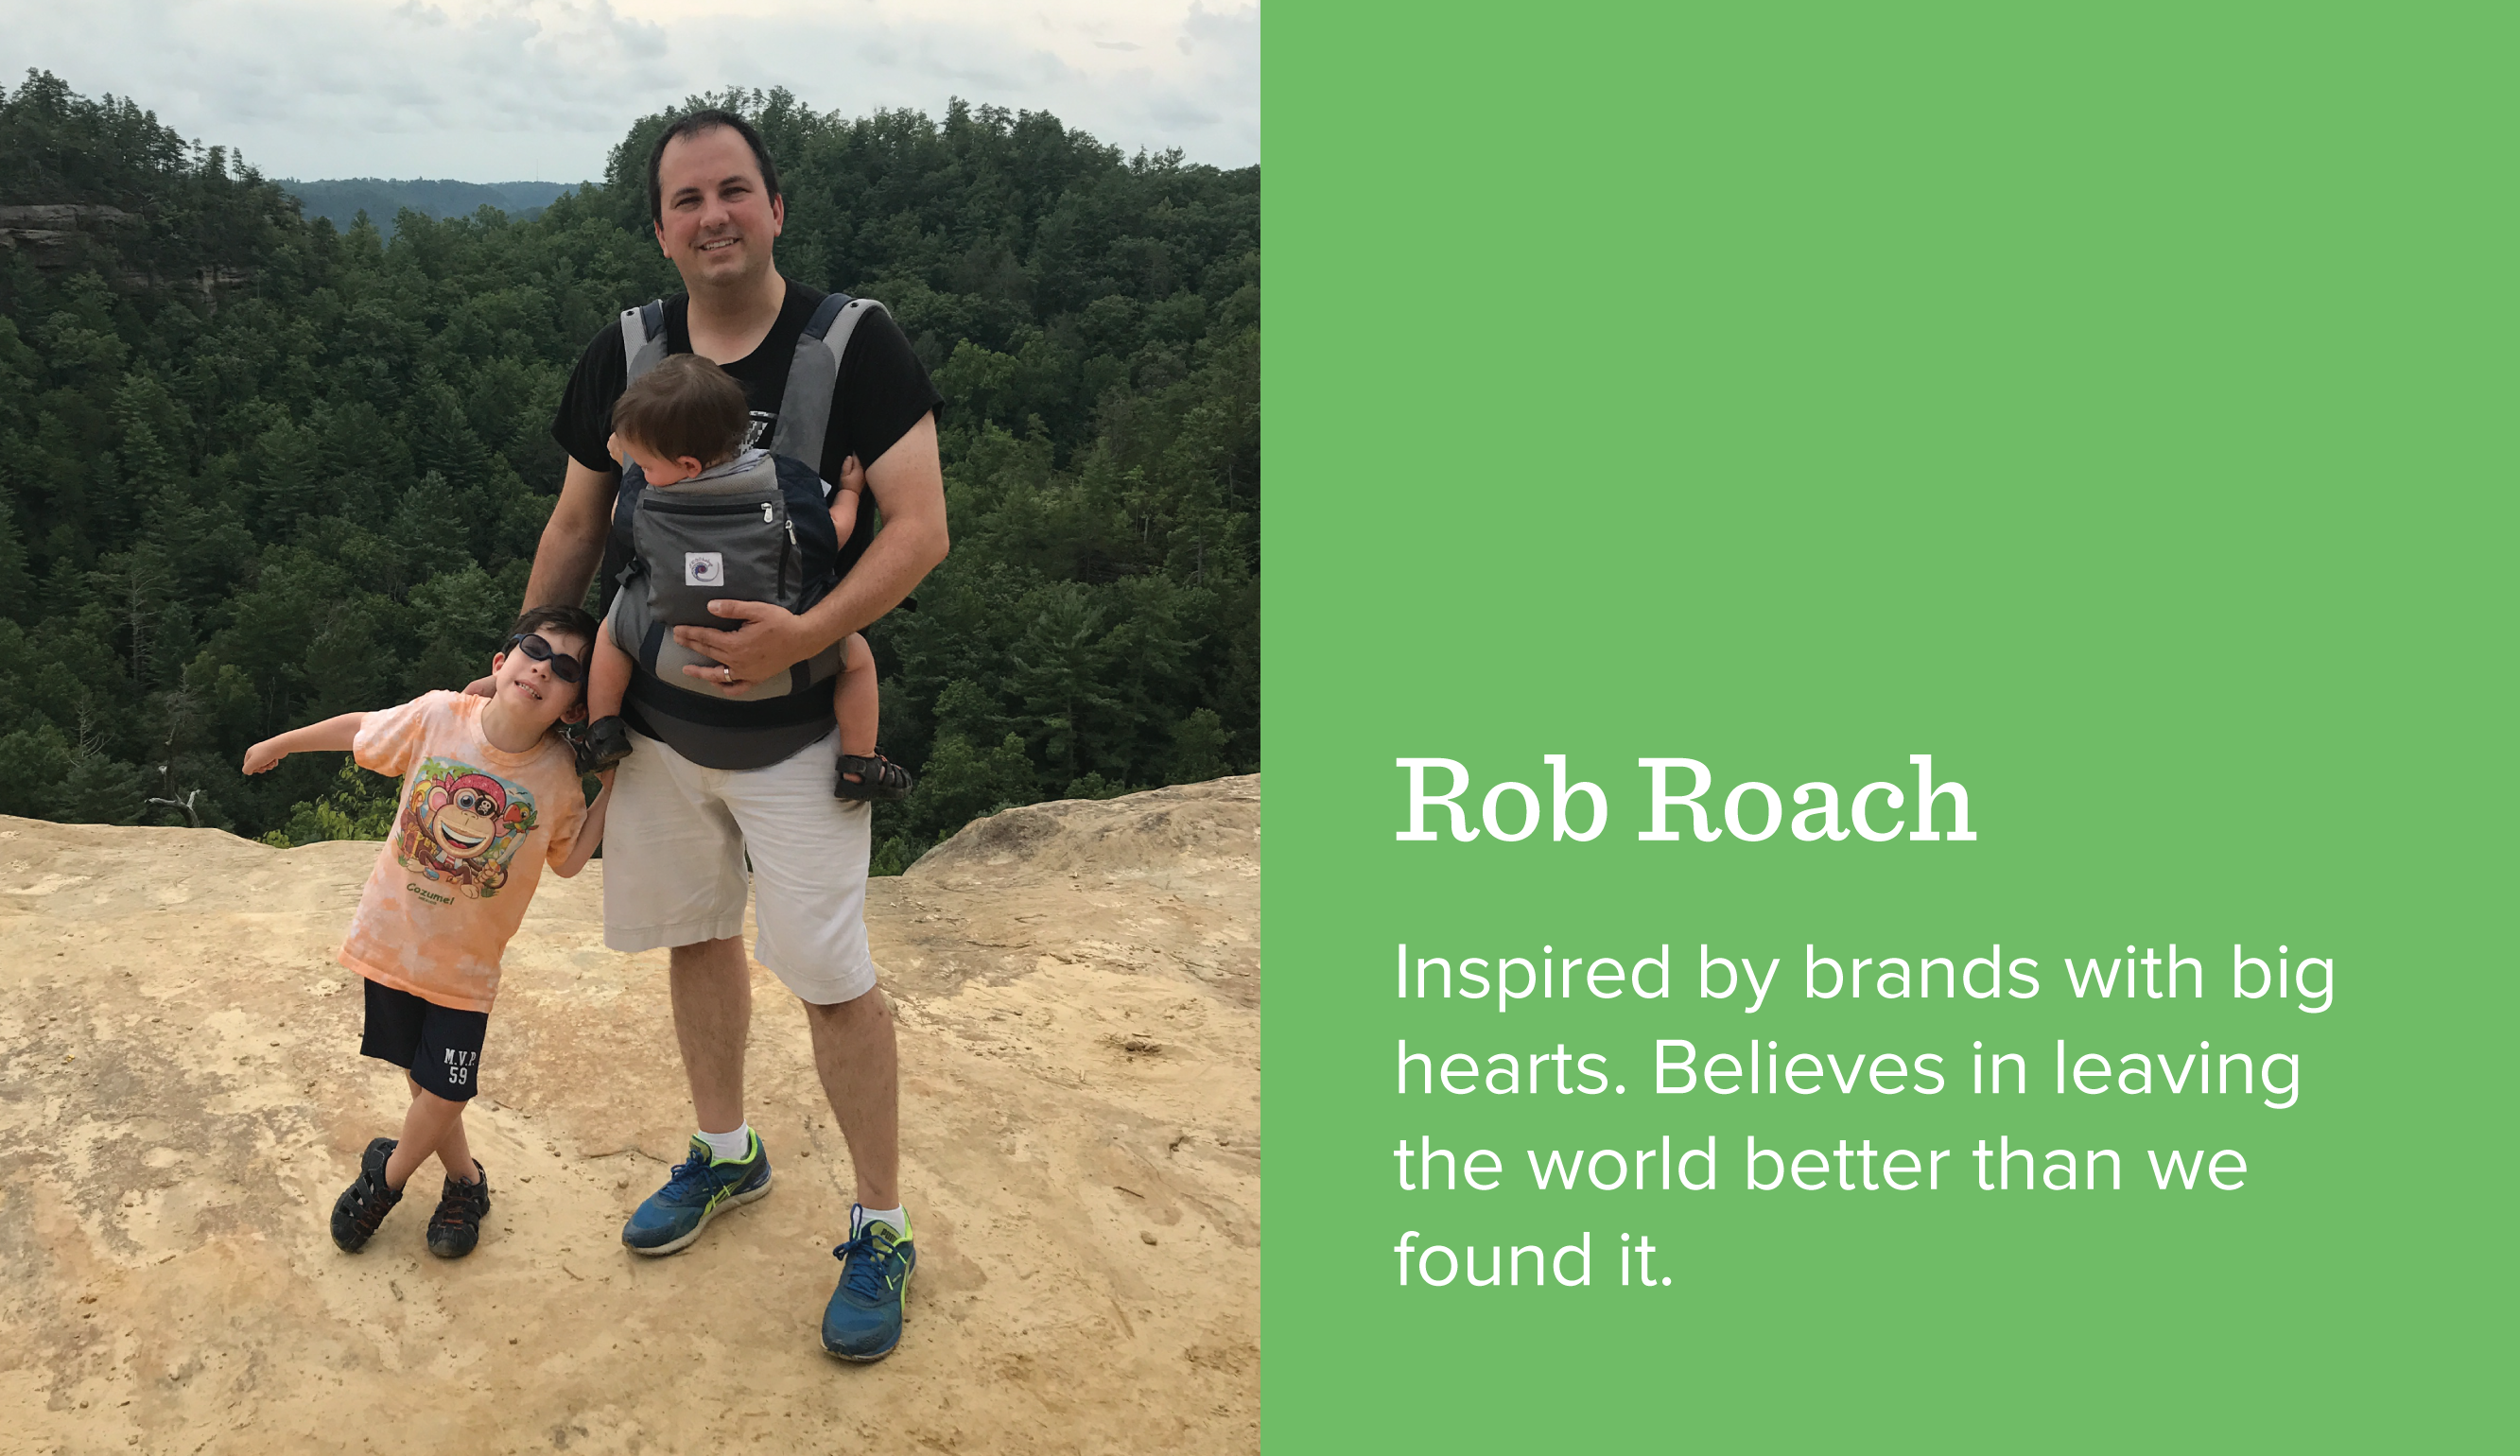 Rob Roach. Inspired by brands with big hearts. Believes in leaving the world better than we found it.